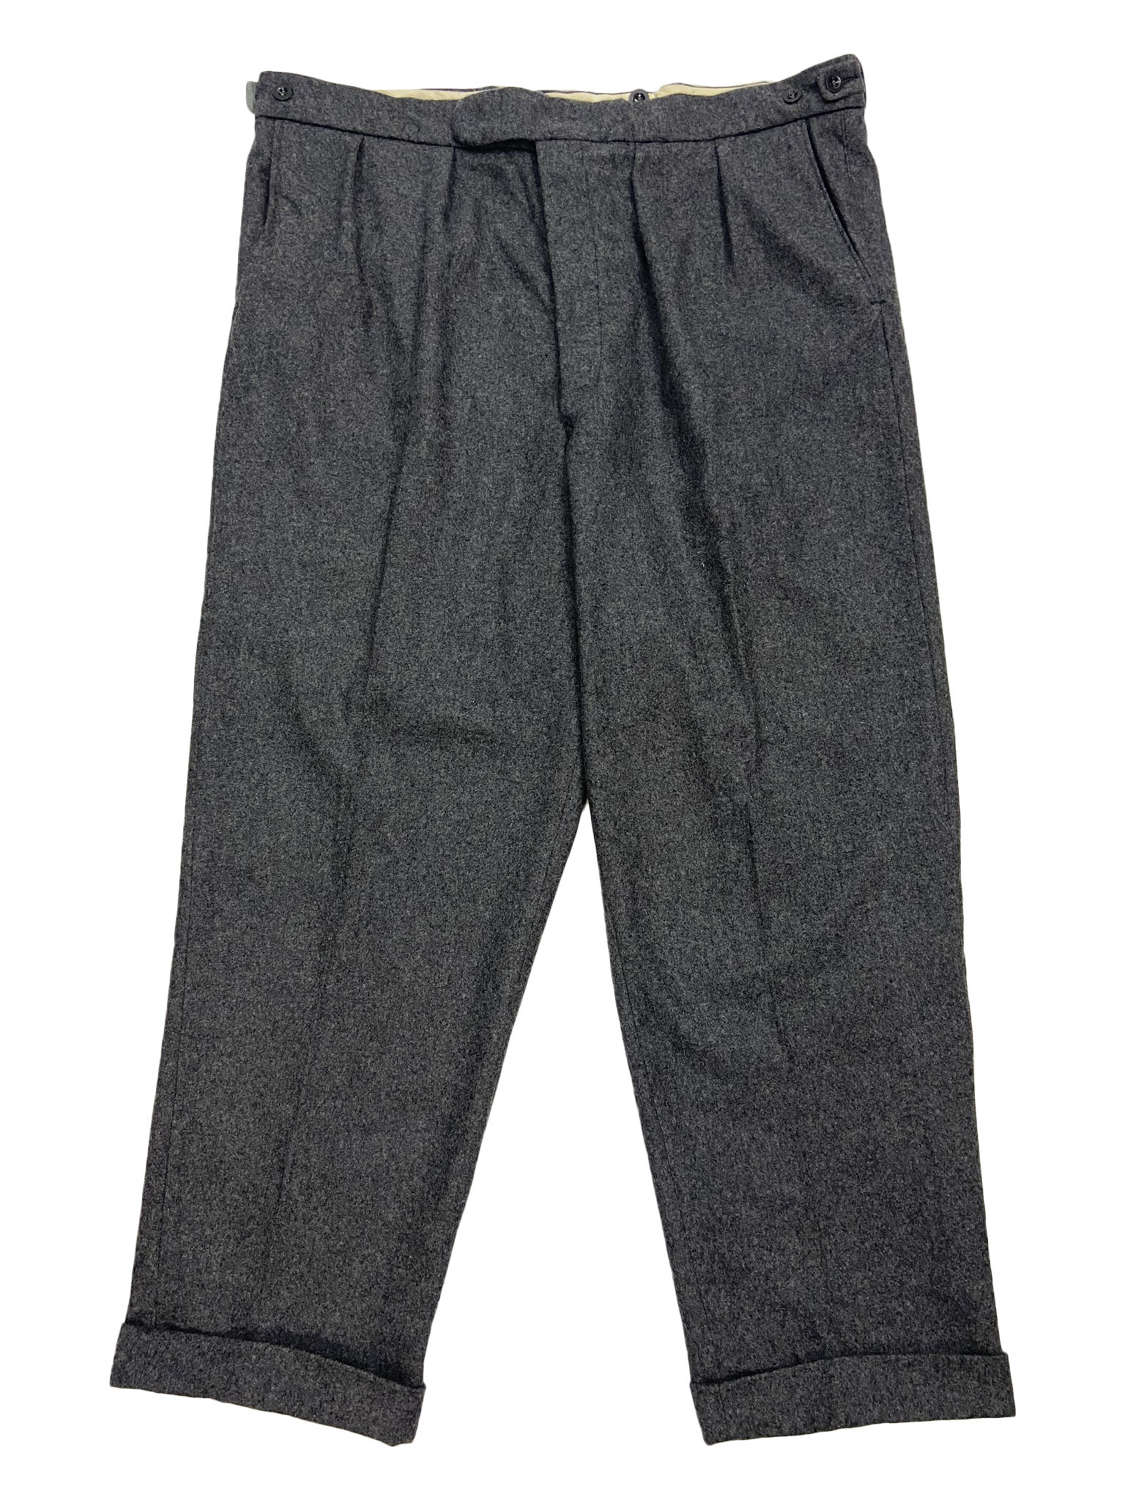 Original 1950s Grey Flannel Trousers by 'West of England'